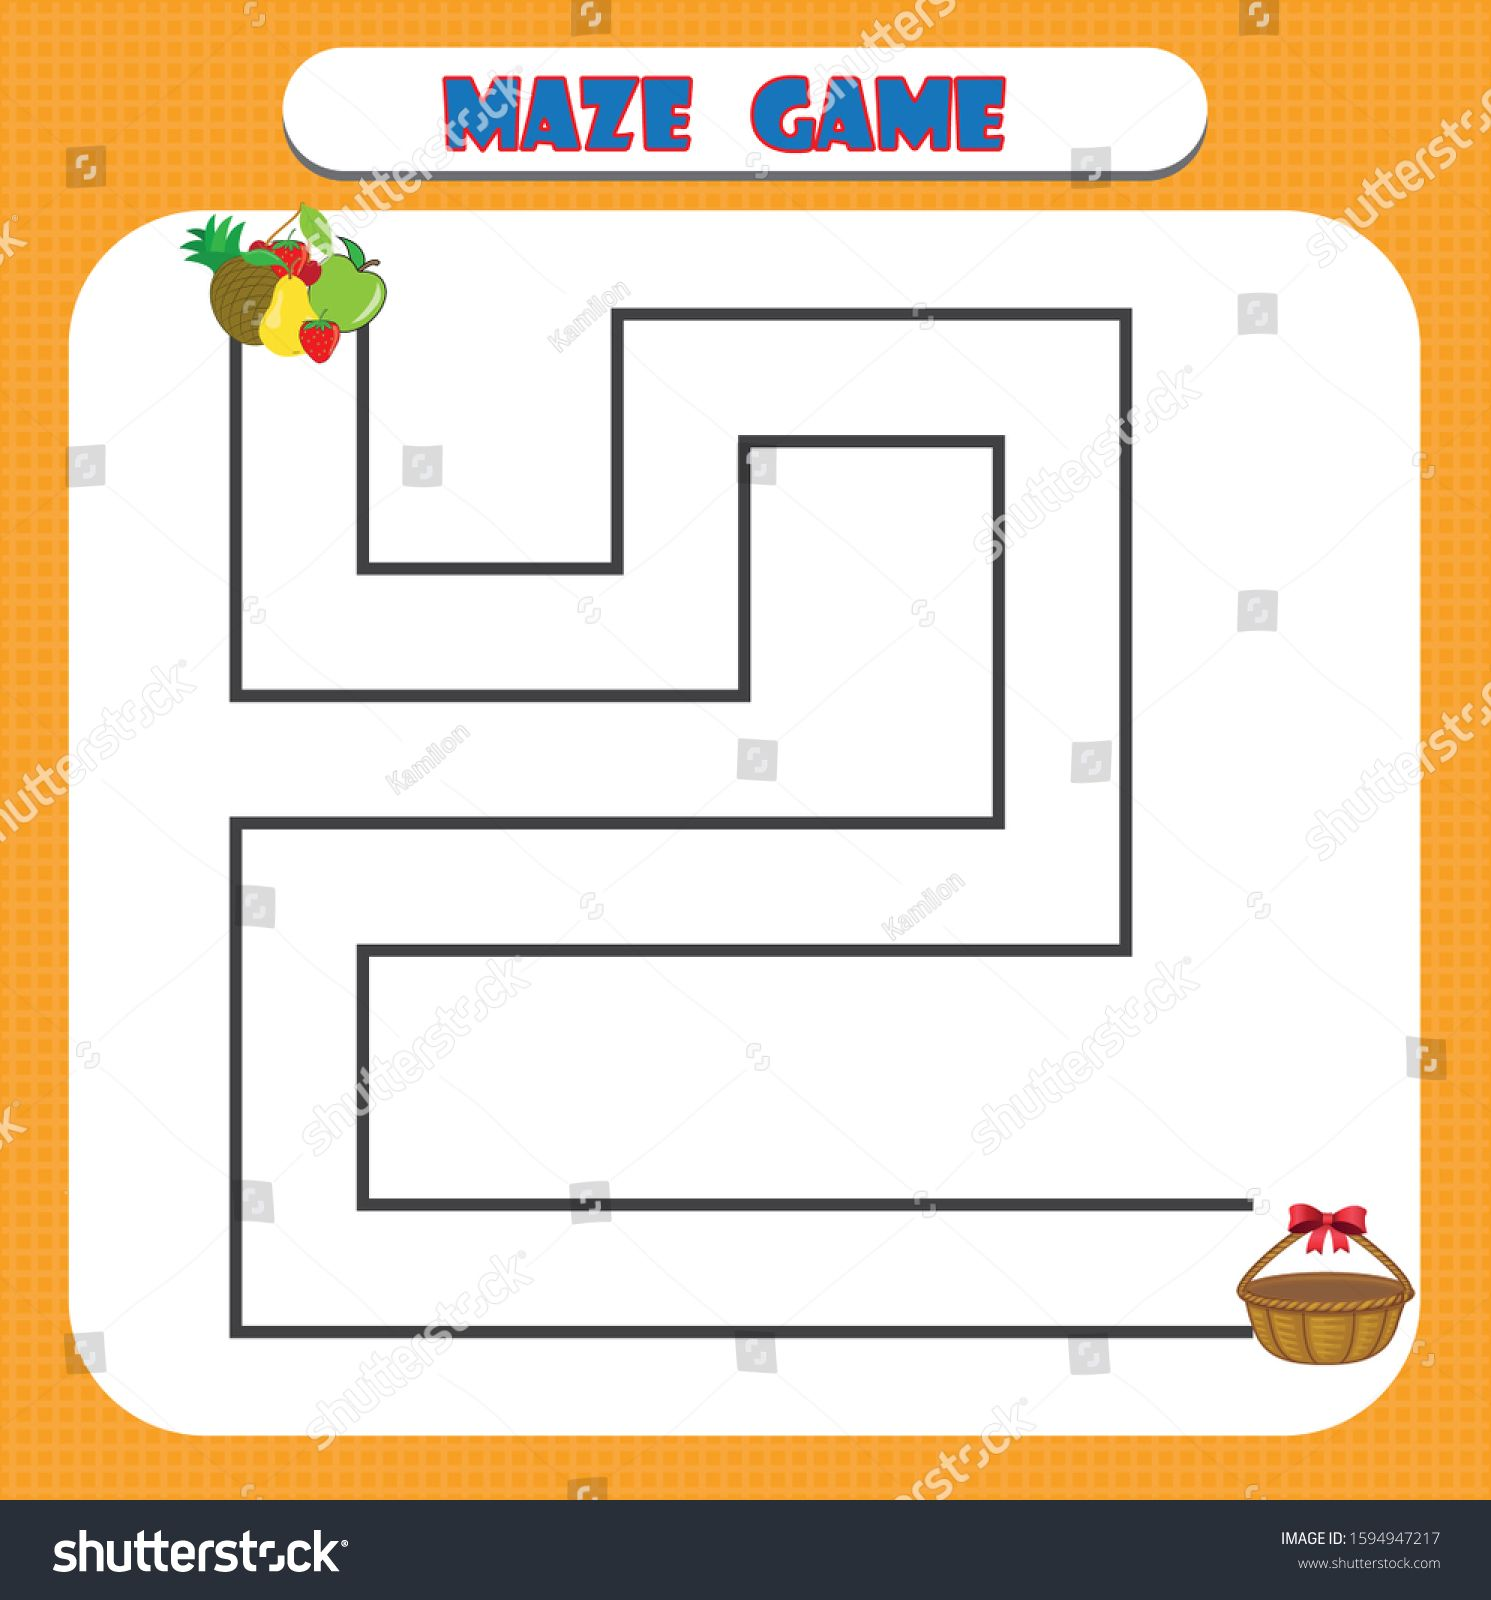 Maze Game For Kindergarten Children Education Developing